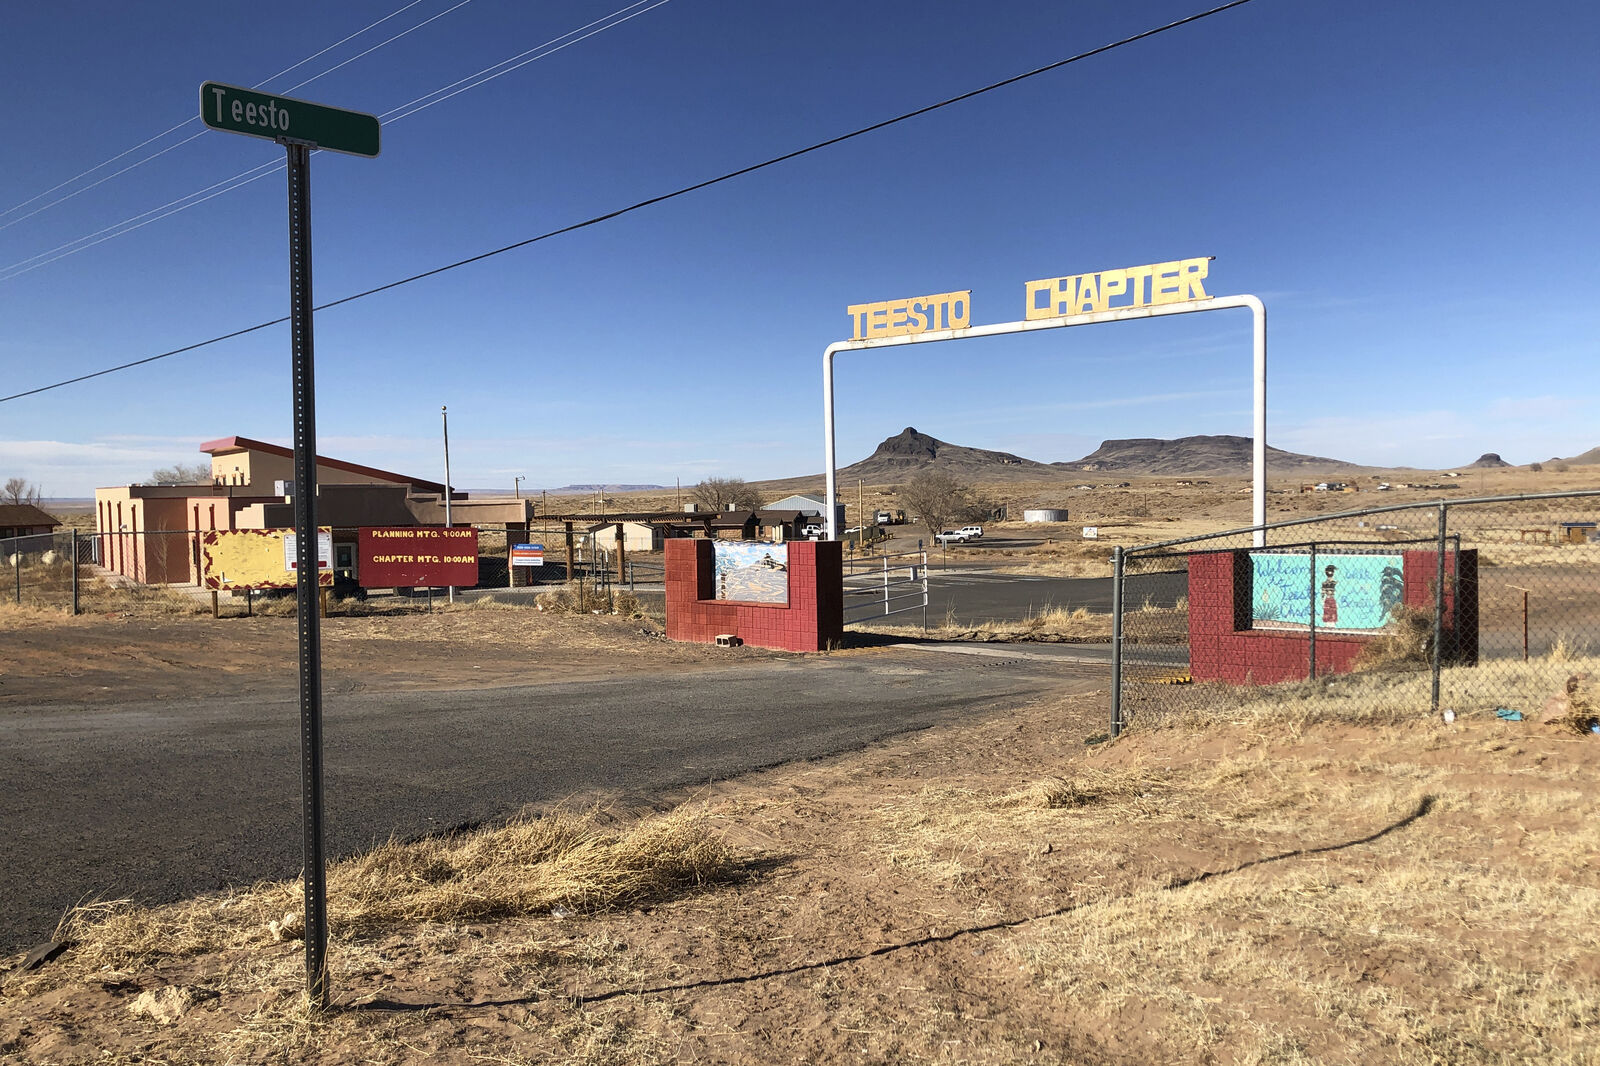 The entrance to the Teesto Chapter in Teesto, Ariz., on the Navajo Nation is seen on Feb. 11, 2021. Teesto workers, health representatives, volunteers and neighbors keep close tabs on another to ensure the most vulnerable citizens get the help they need. (AP Photo/Felicia Fonseca)